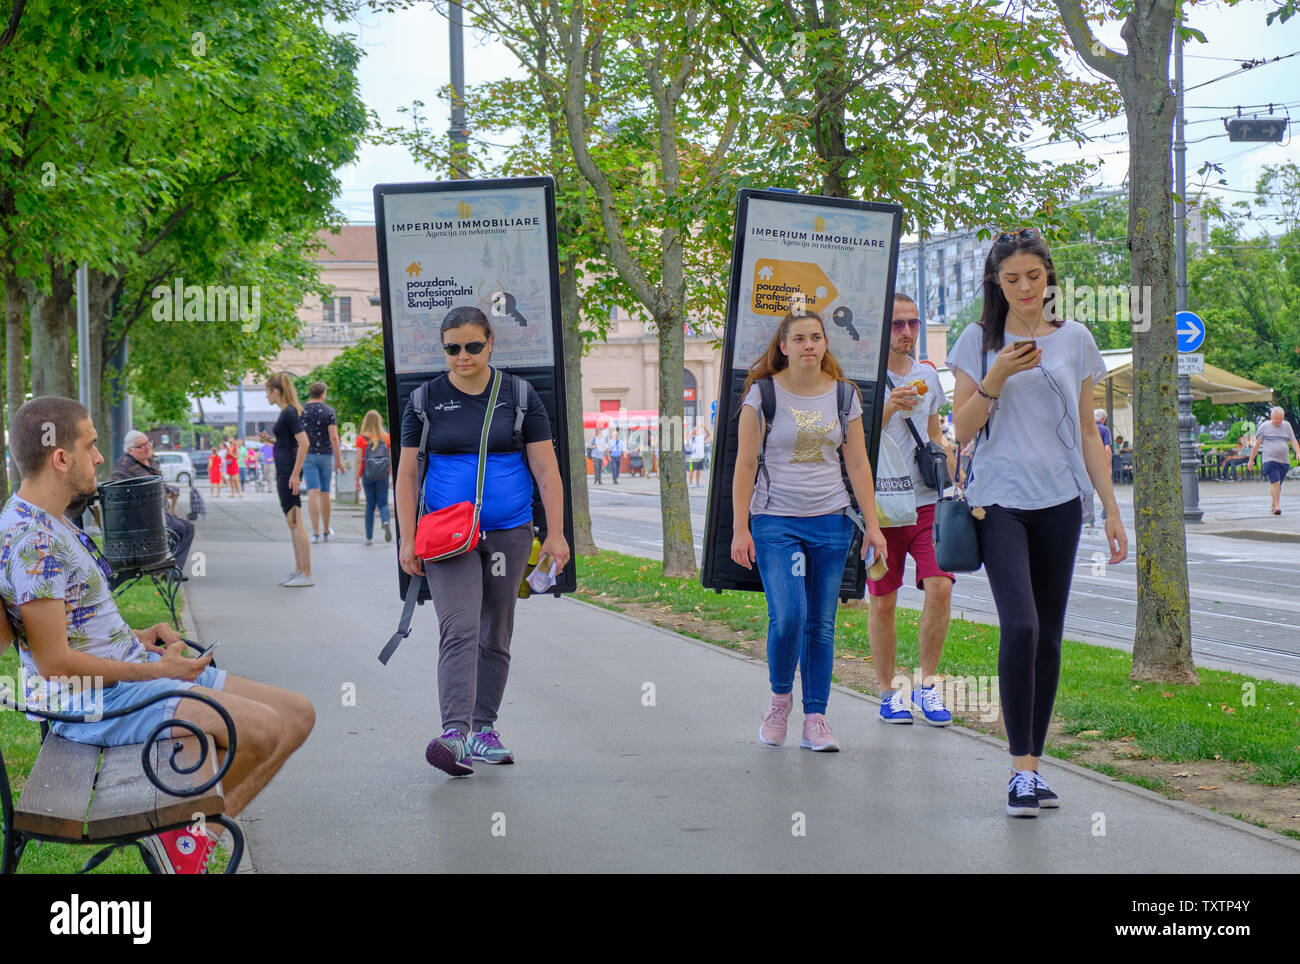 Two young females carrying walking advertizing billboard on their shoulders walking on sidewalks while man watches. Zagreb, Croatia - June 22, 2019. - Stock Image